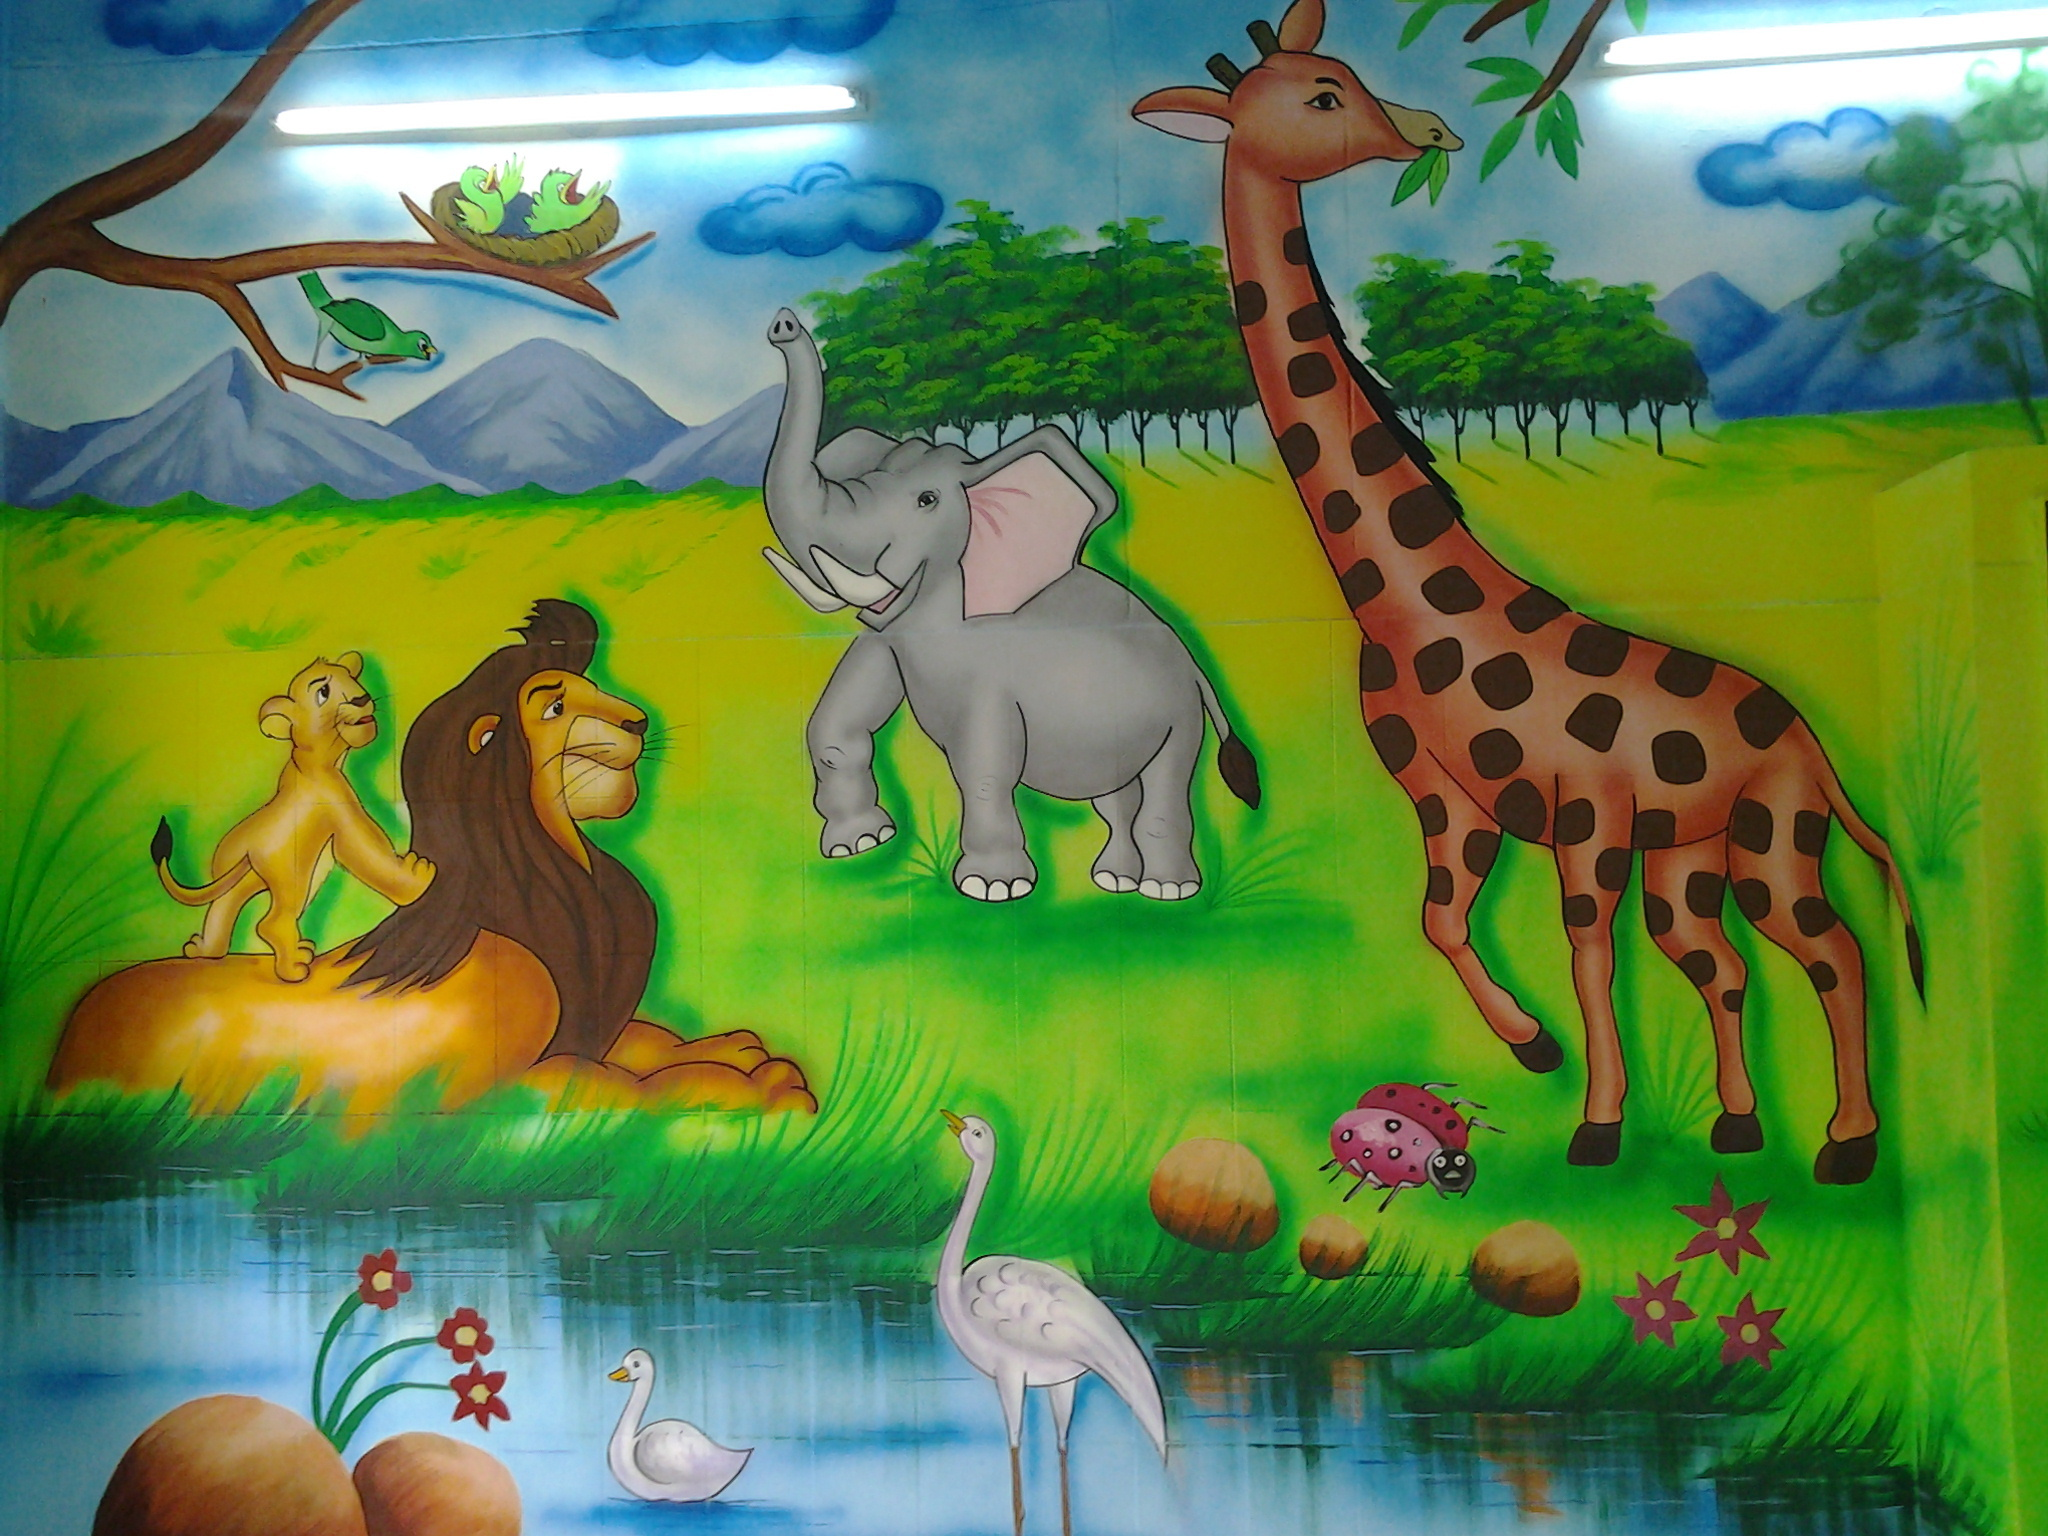 Theme Jungle 3d jungle theme painting service in shahdhra, delhi, play school art